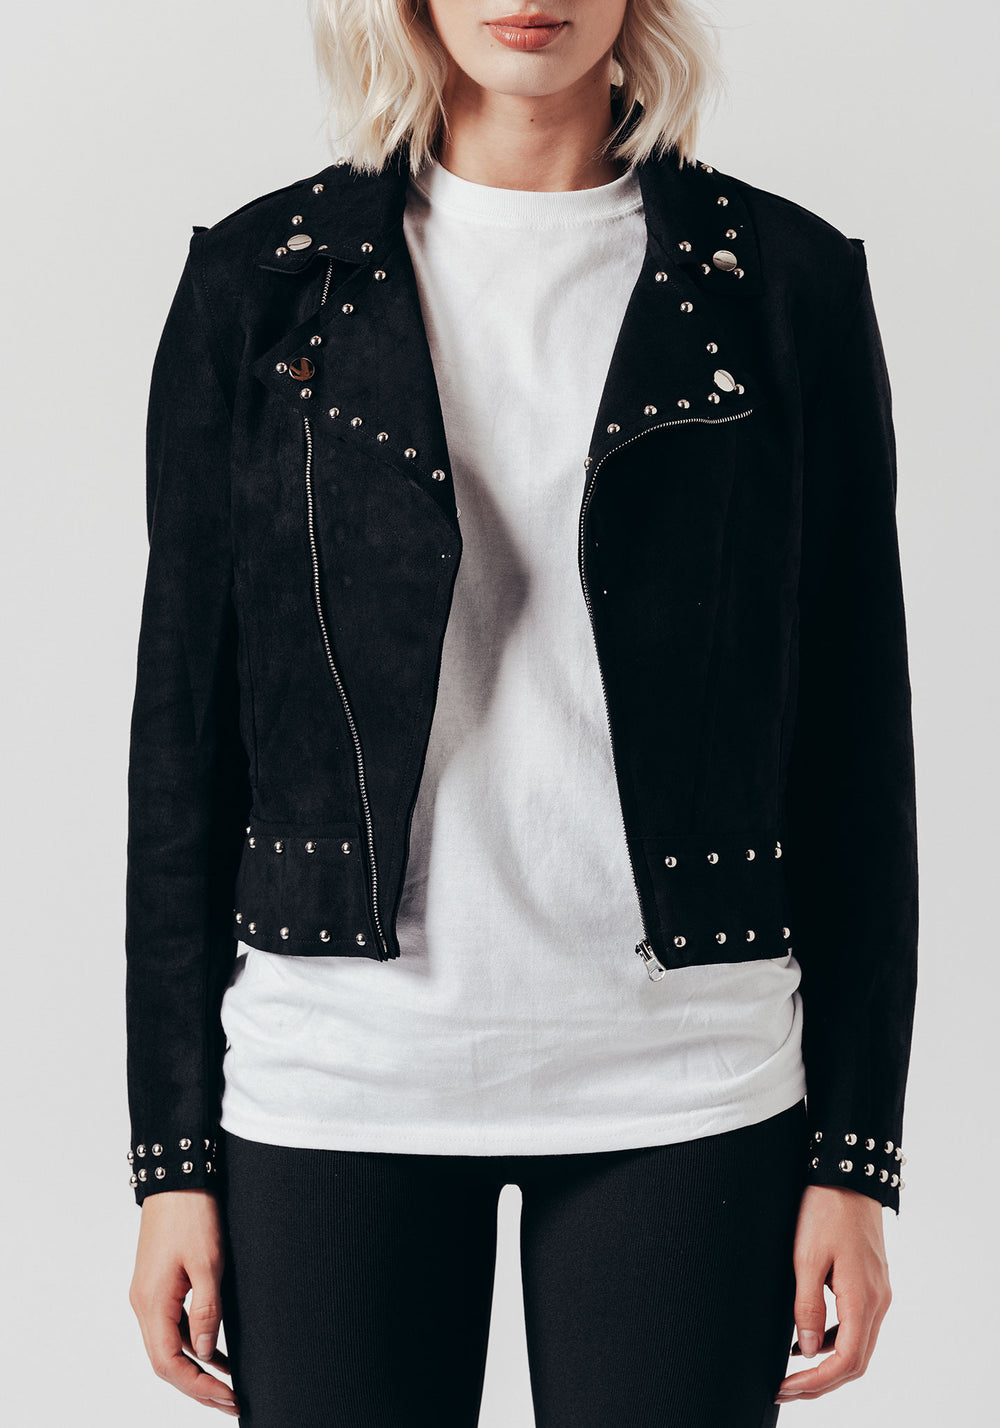 Black Faux Suede Studded Jacket